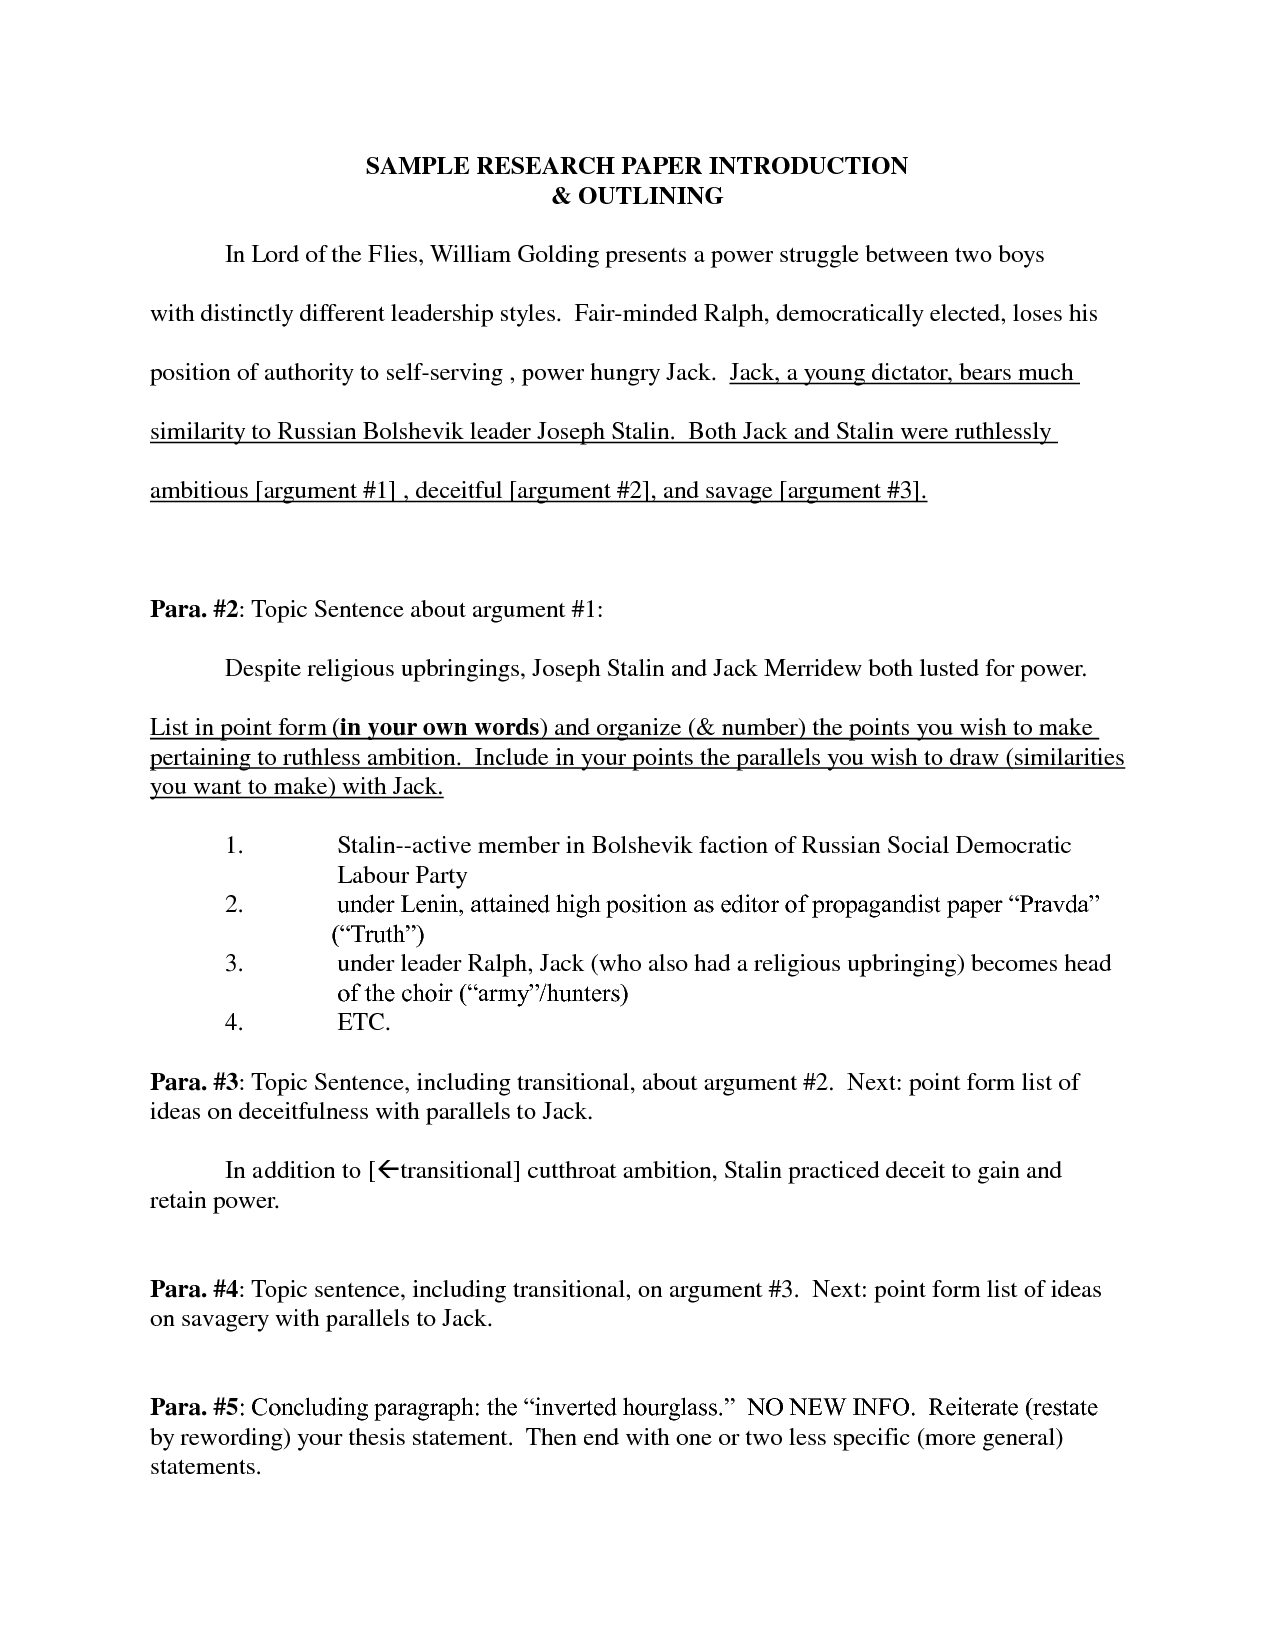 004 Z5lnw4jypw Introductions To Researchs Example Sensational Research Papers Full